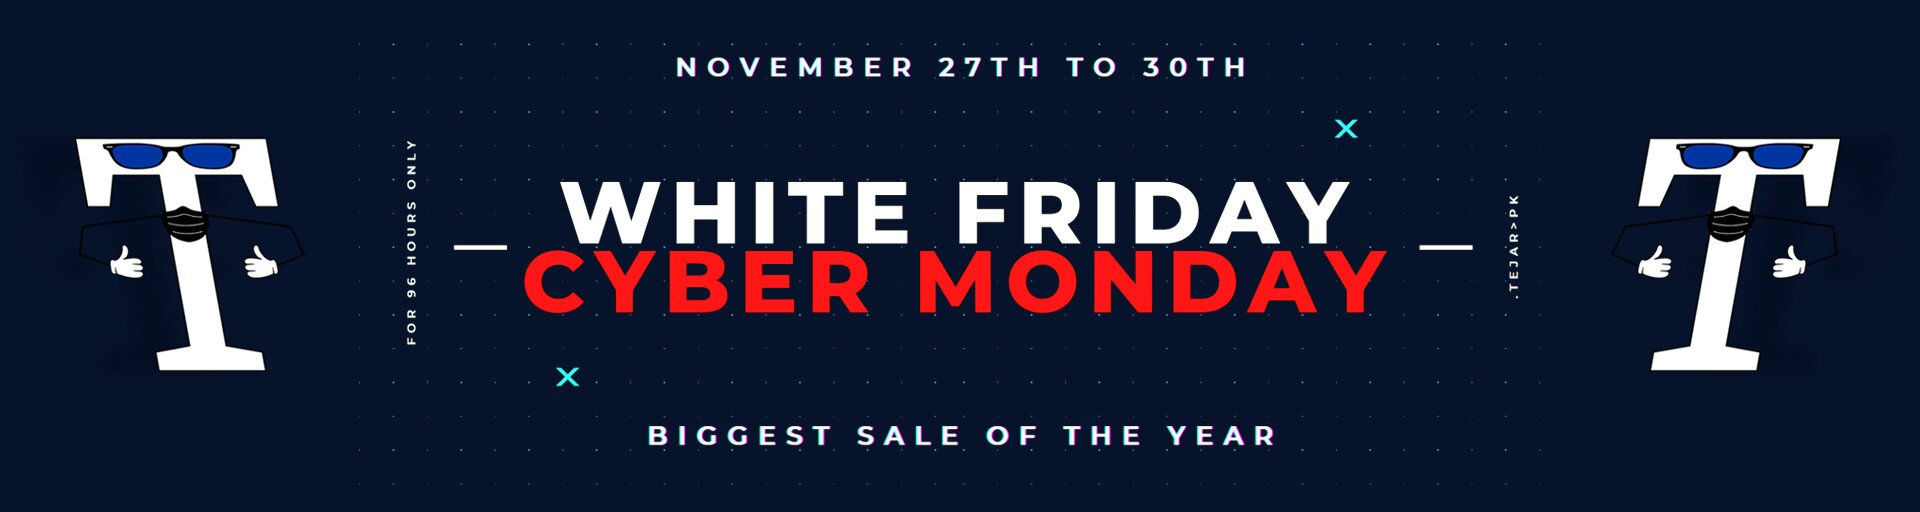 White Friday and Cyber Monday Sale banner